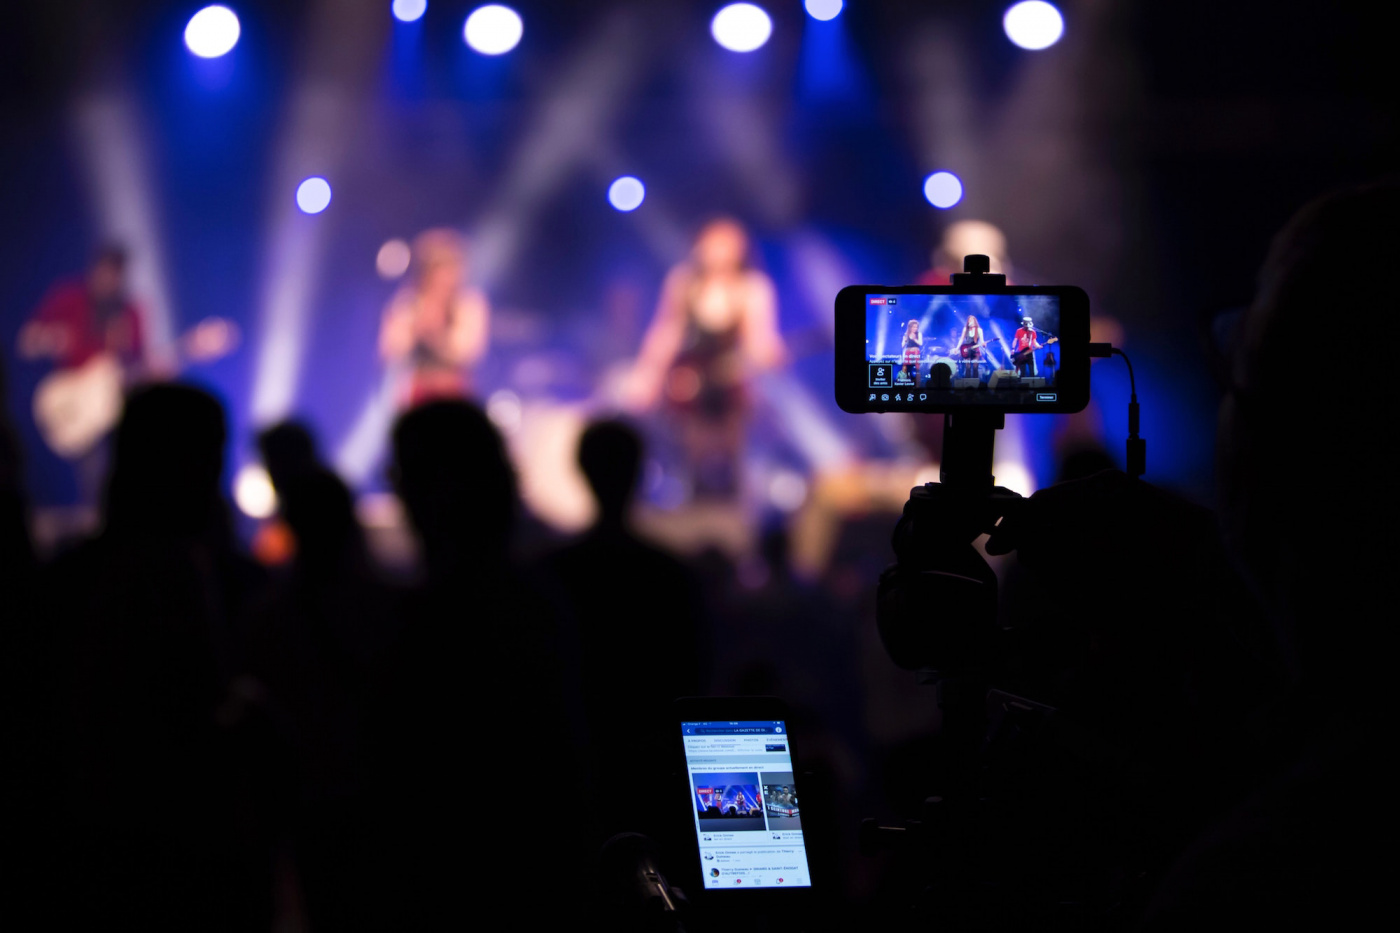 How to Build Next-Gen eVents in the Age of Live-Streaming